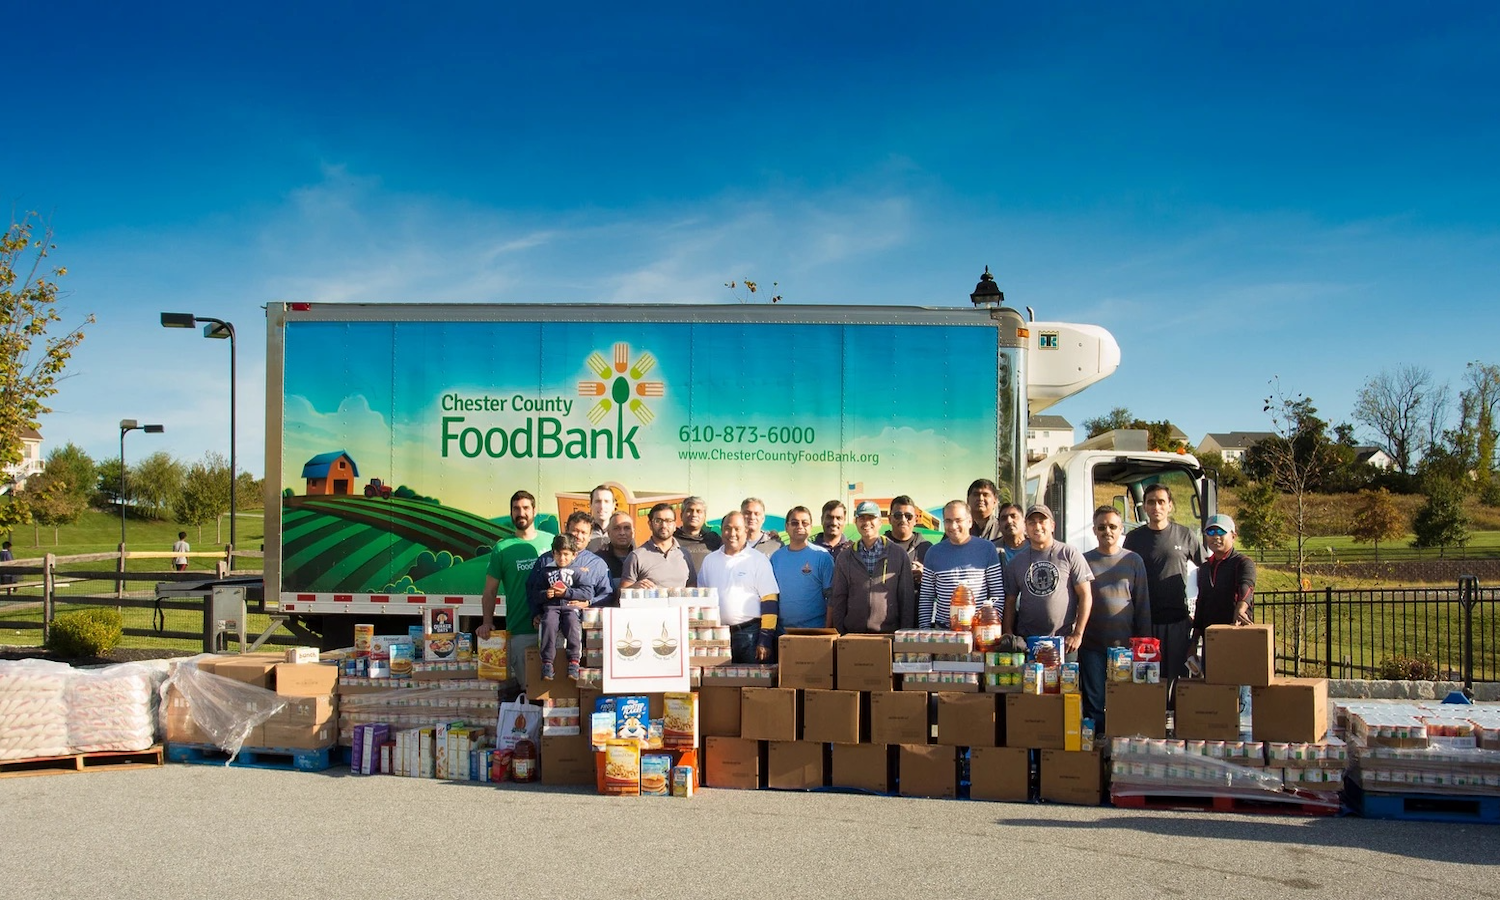 Diwali Food Drive is helping provide food to people in need in Chester County, PA during Diwali